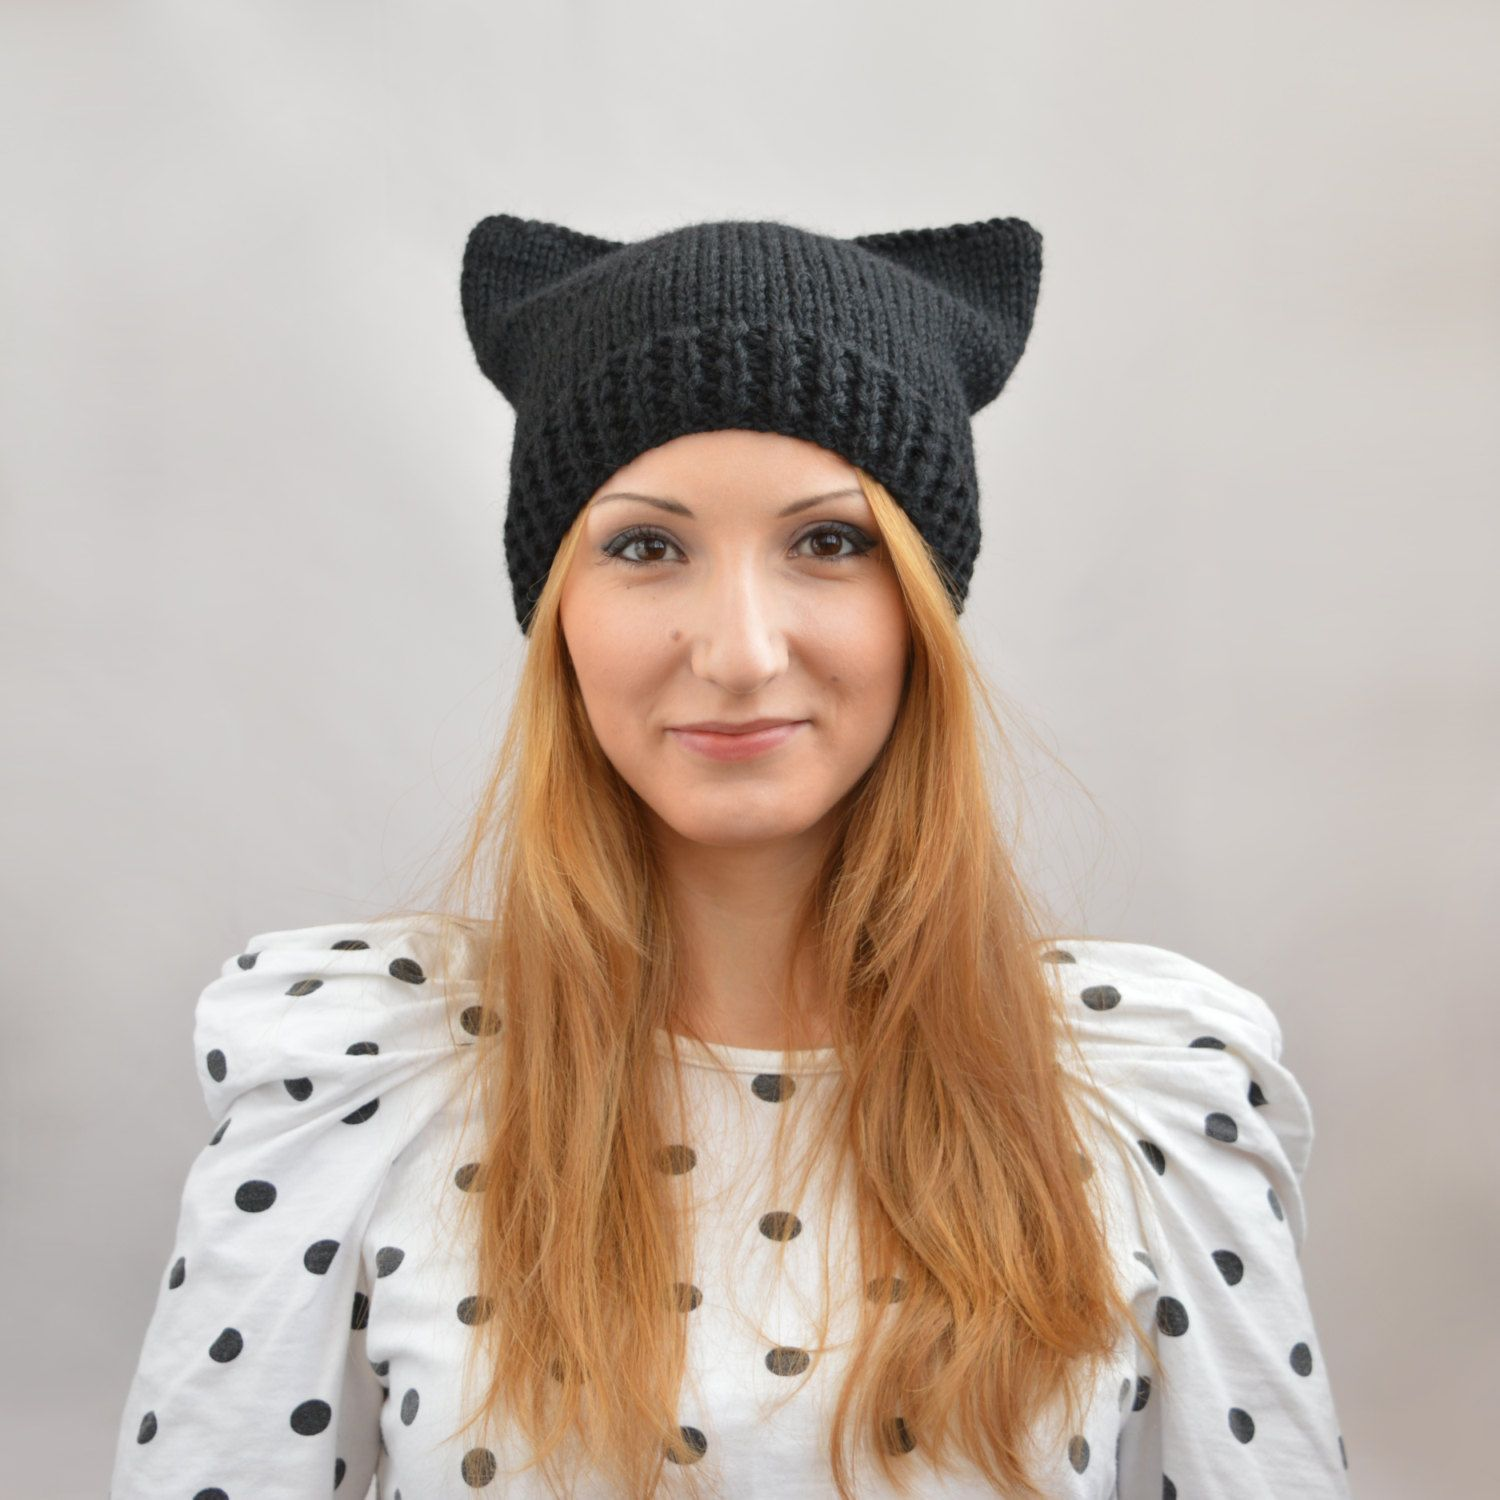 Cat Ear Knit Hat Pattern : Awesome Animal Hats - From Mane \n Tail